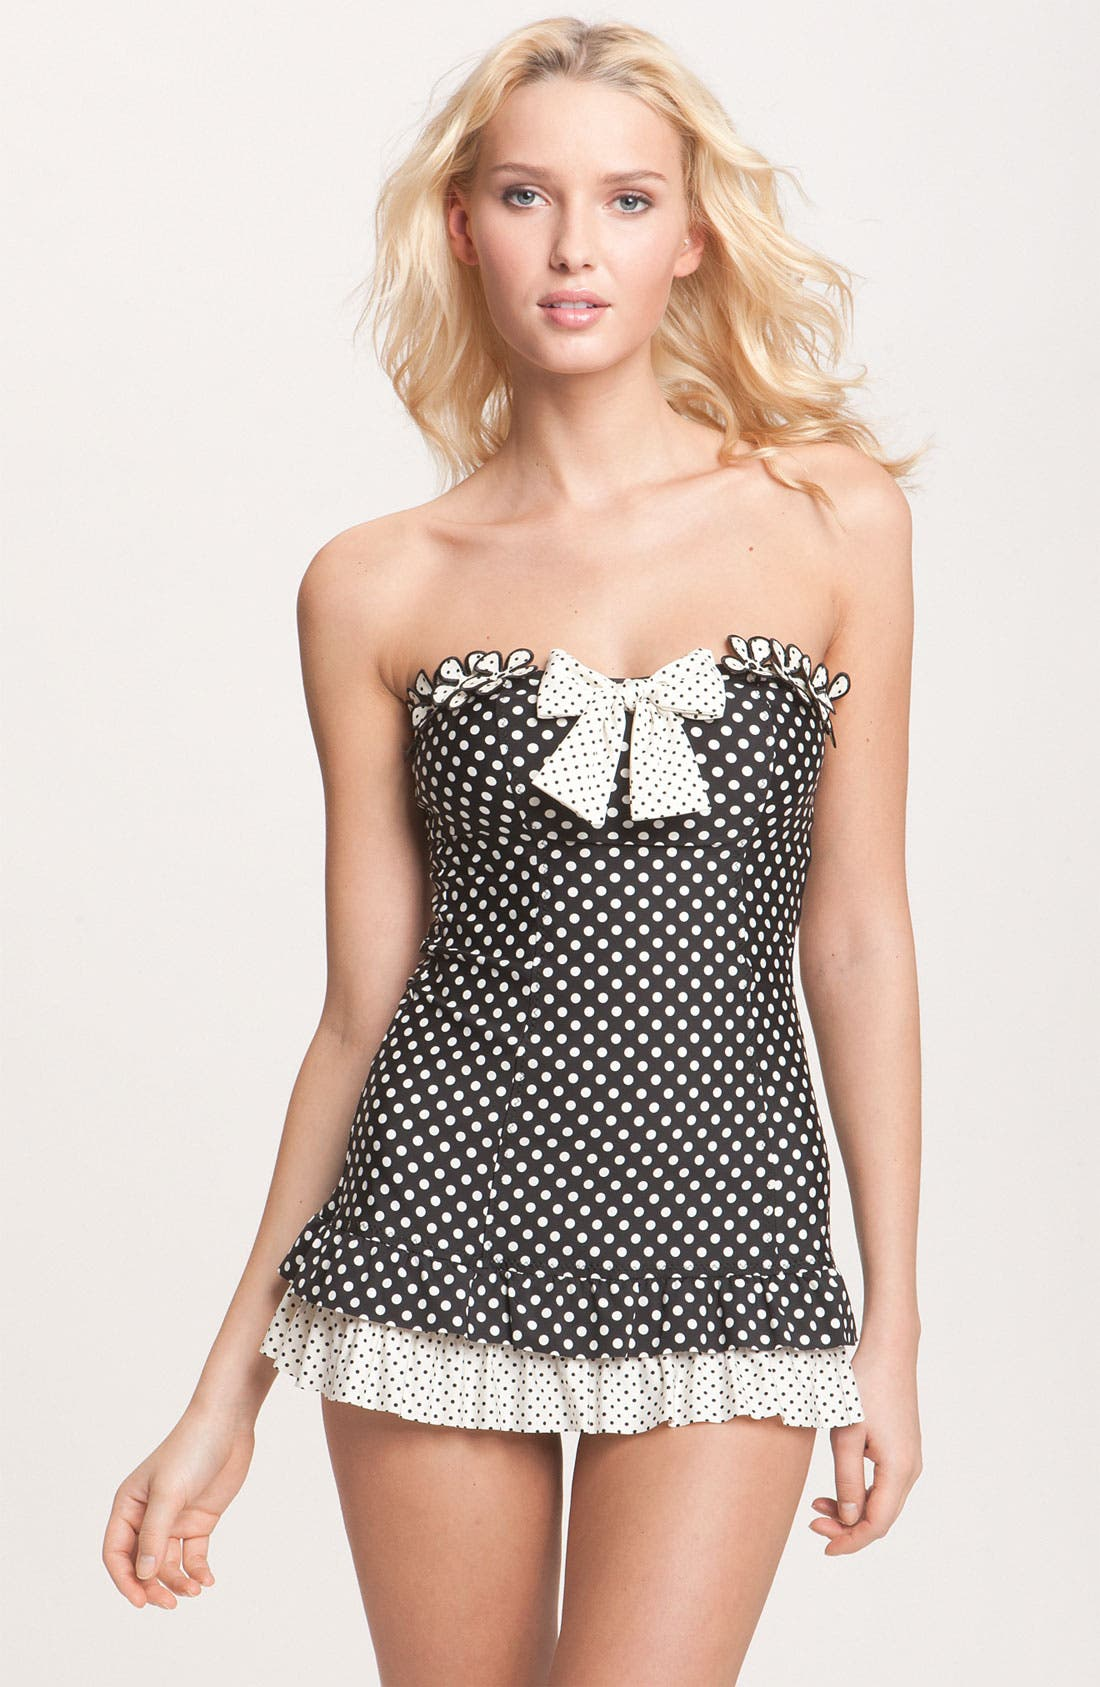 Main Image - Betsey Johnson 'Pinwheel' Skirted One Piece Swimsuit